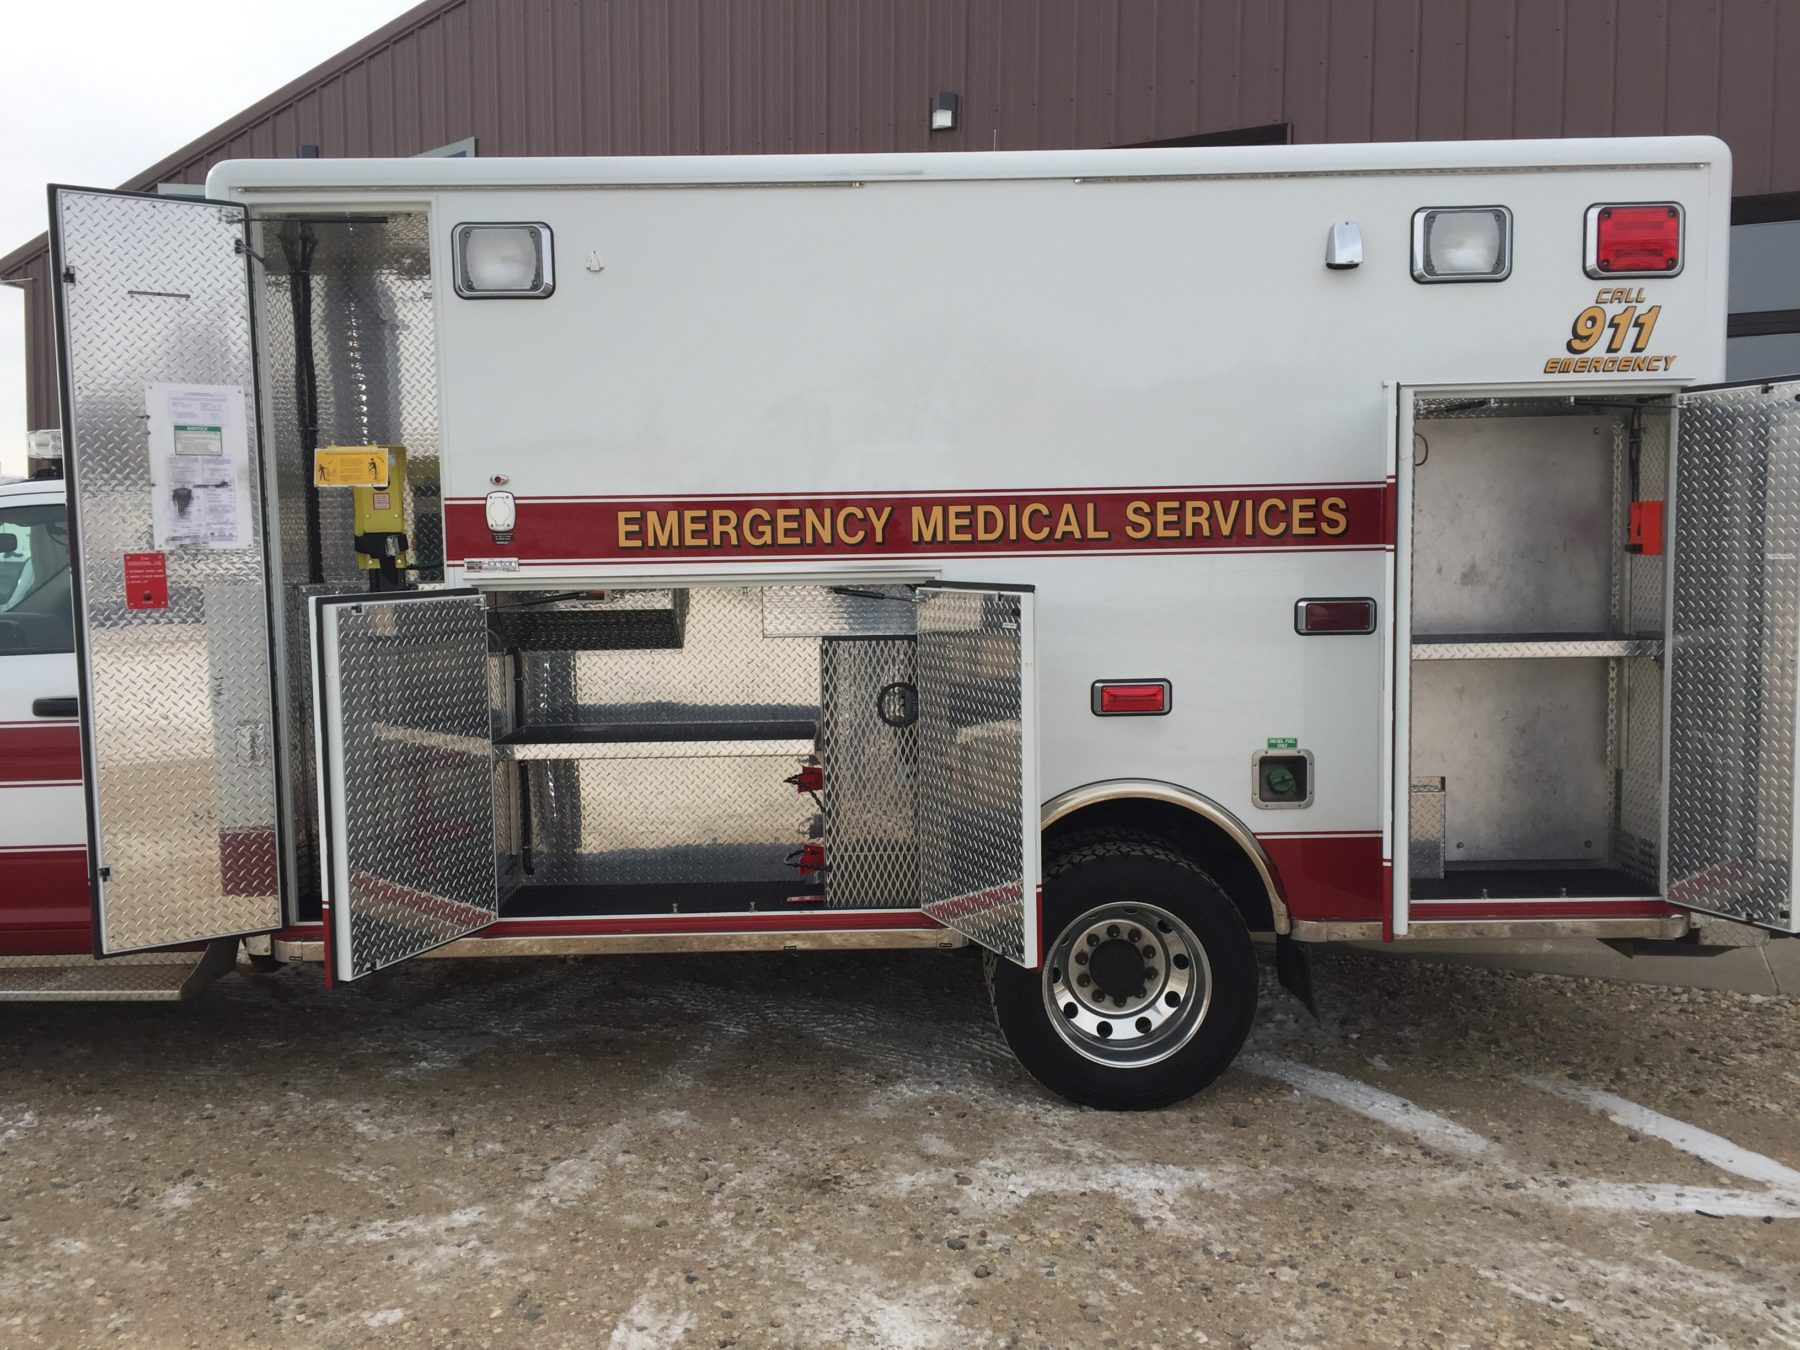 2012 Dodge 4500 Type 1 Ambulance For Sale – Picture 6